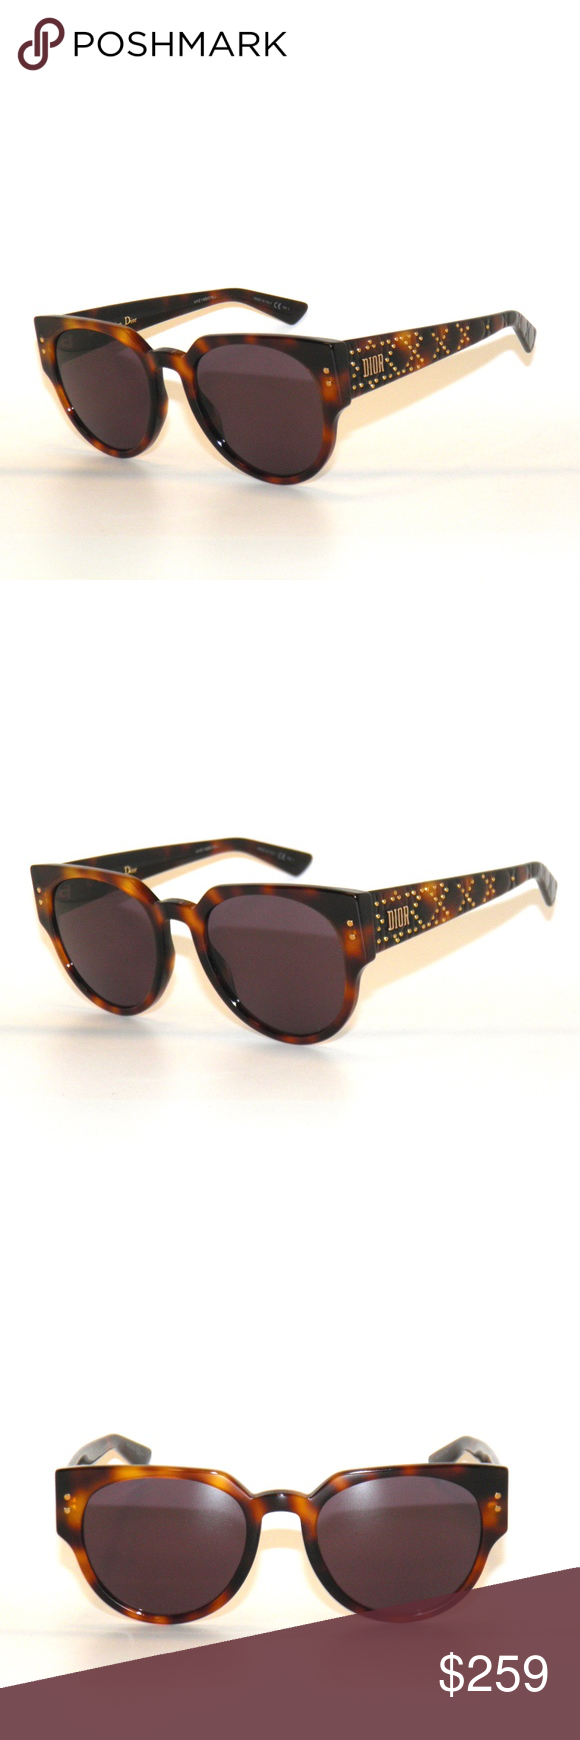 e7833ba1fbbe8 Lady Dior Studs 3 Havana Brown 086UR Sunglasses Christian Dior Lady Dior  Studs 3 Havana Brown 086UR Sunglasses Brand new and authentic with original  case . ...